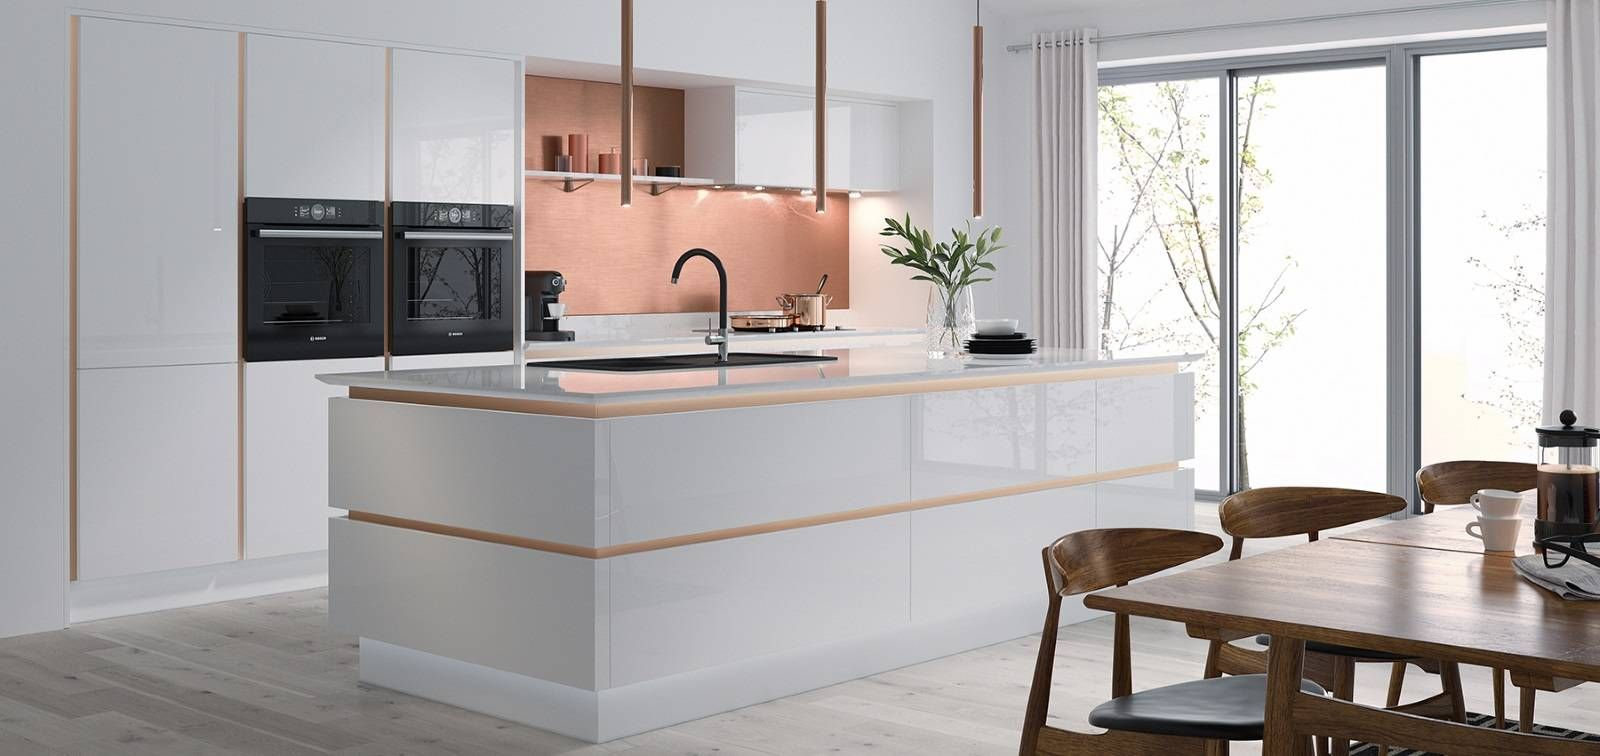 Best Milano Ultra Bianco Gloss Copper Modern Kitchen Wren 400 x 300